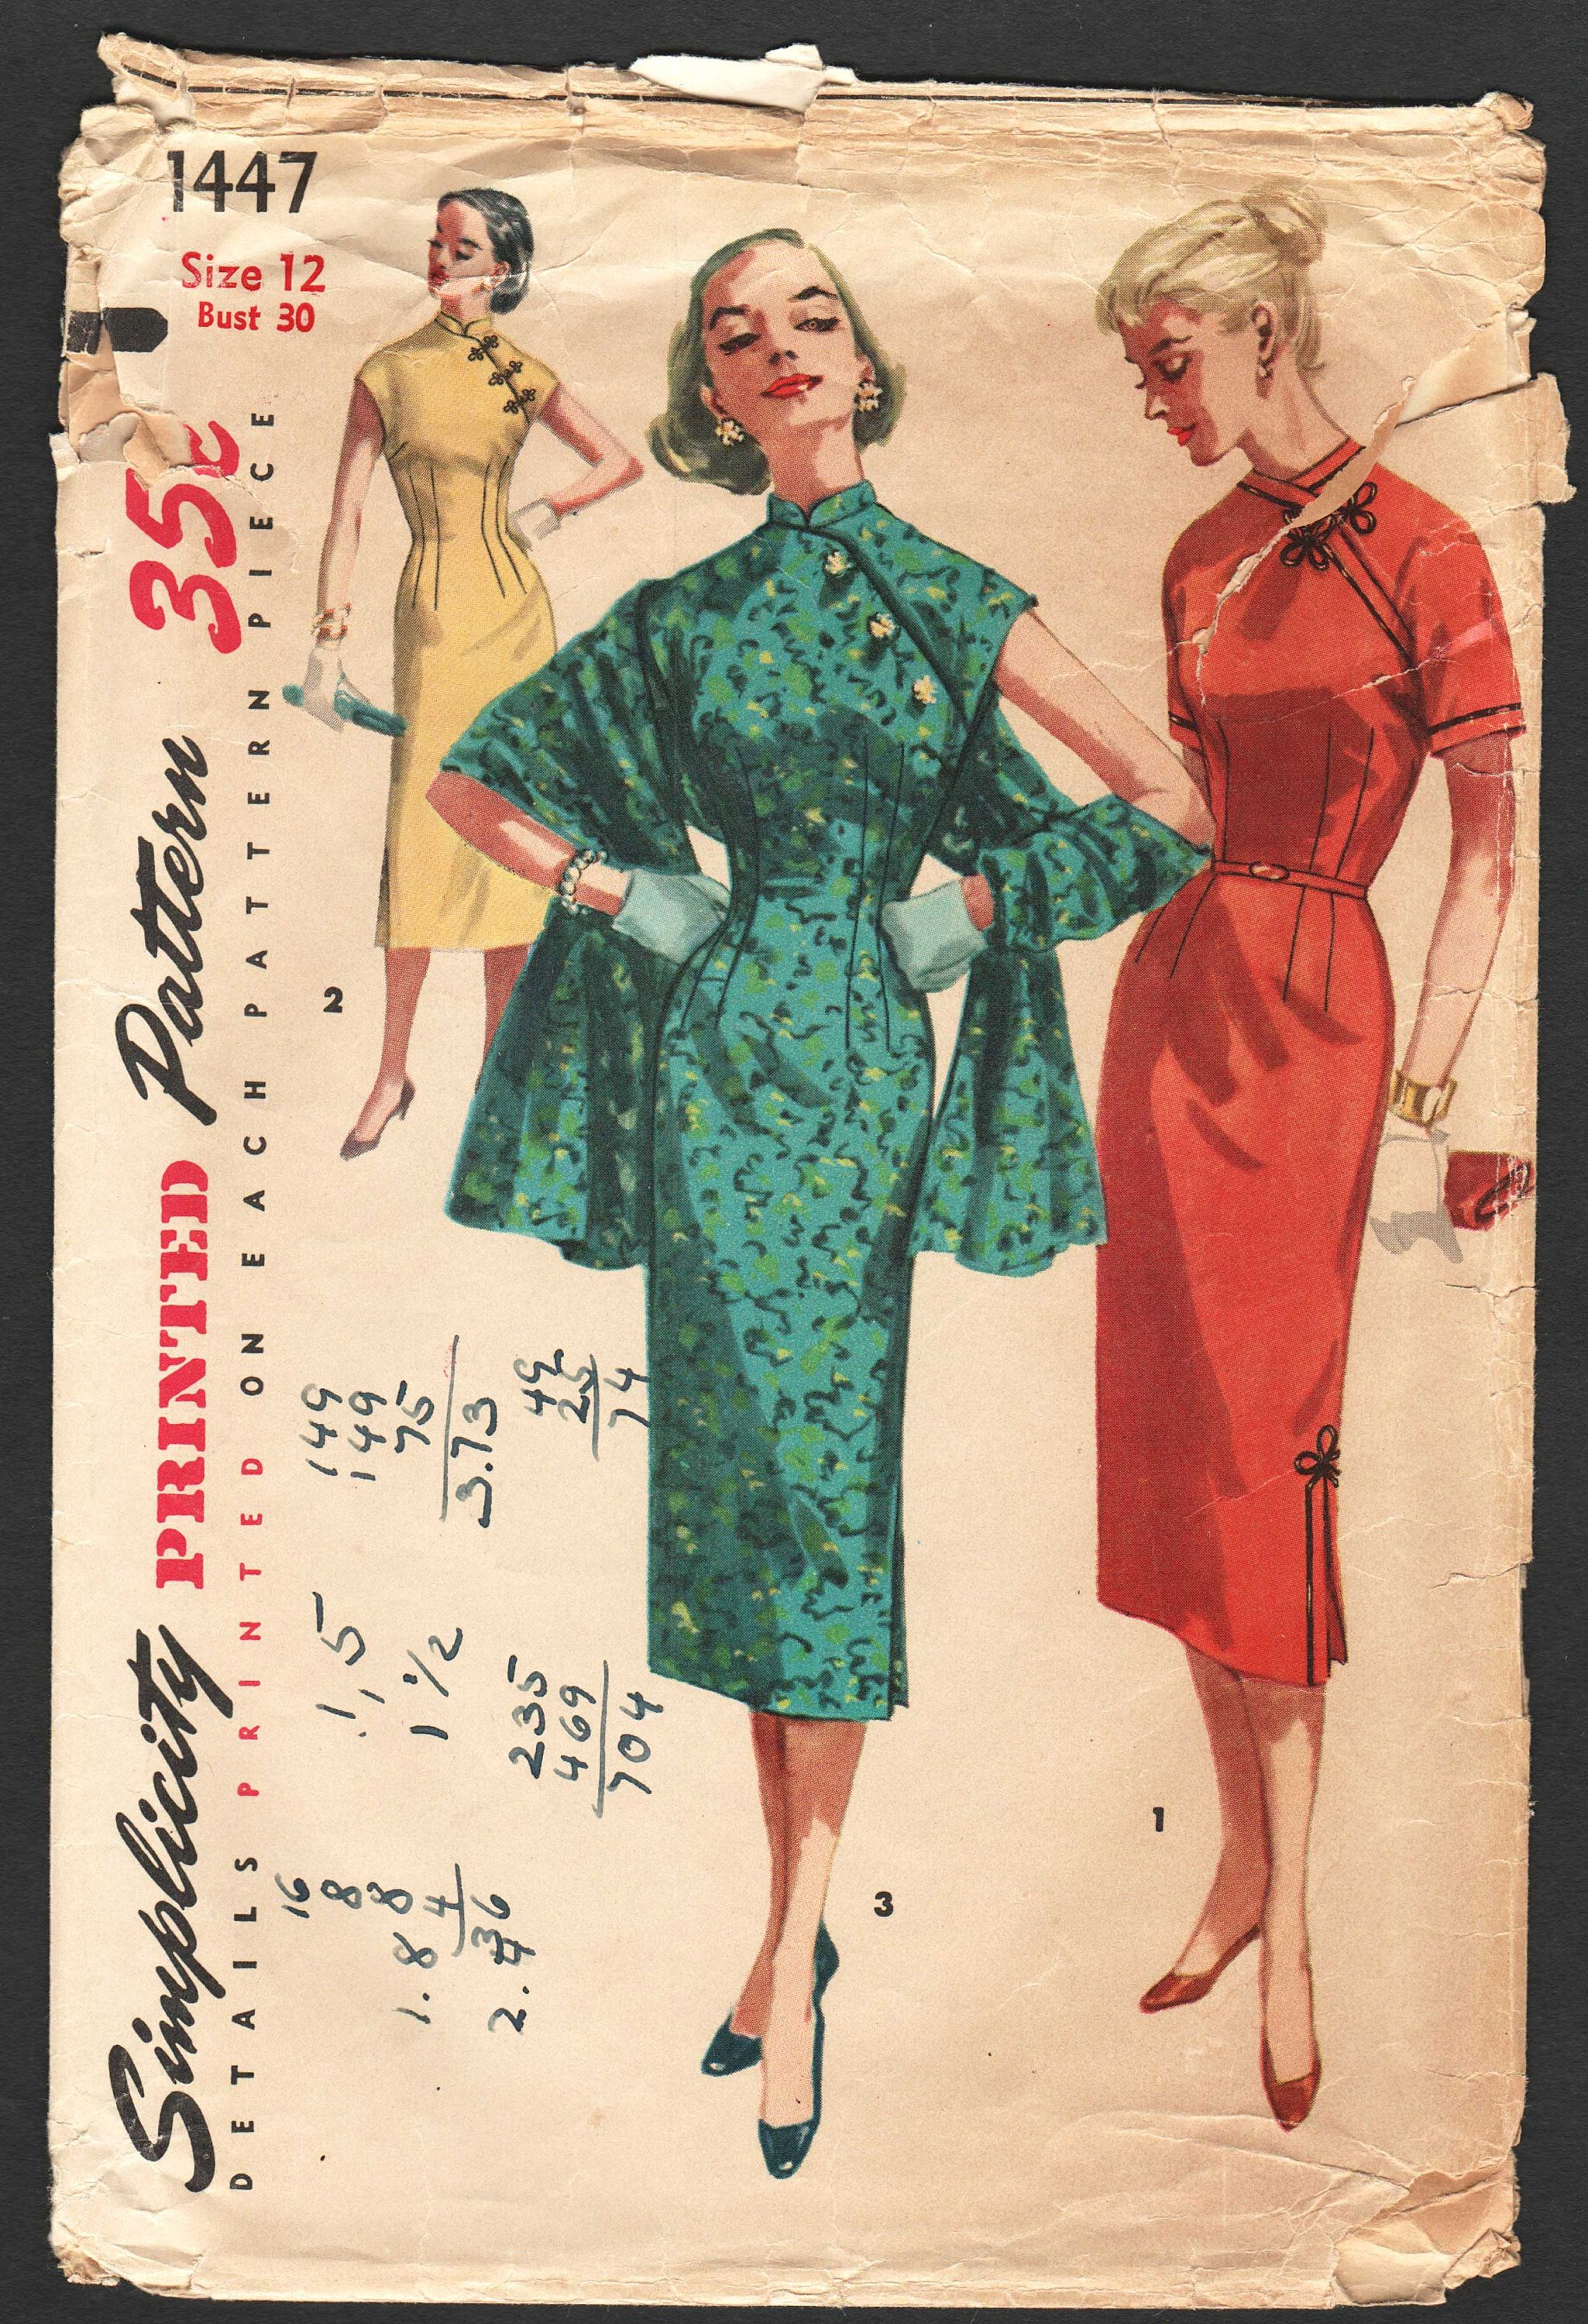 e1806a2b0c 1950s Chinese Dress Pattern Misses Asian Qipao Cheongsam Sheath Dress  Vintage Sewing Pattern Simplicity 1447 Size 12 Bust 30